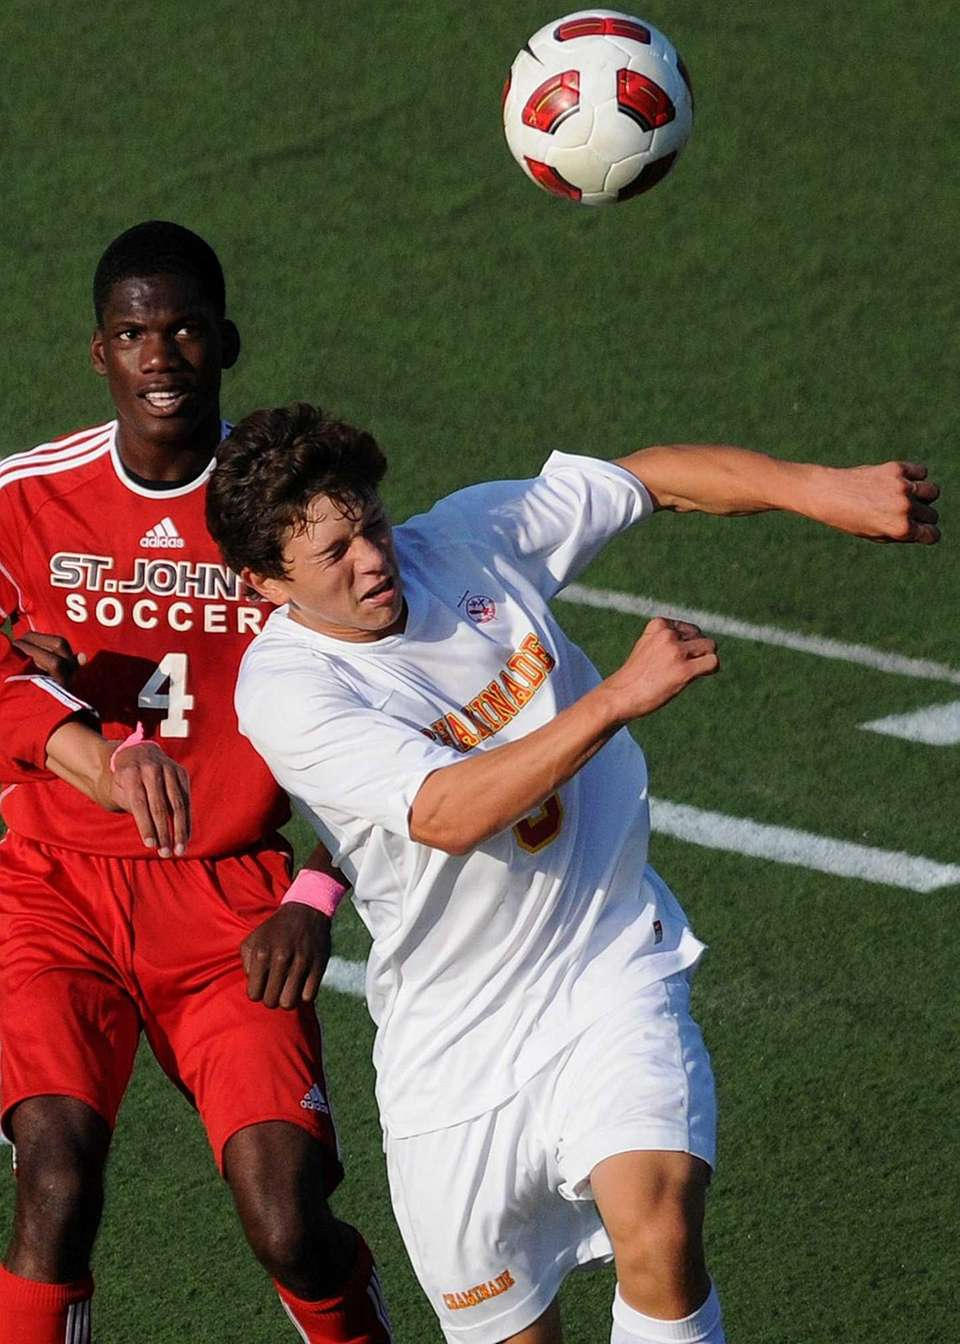 Chaminade's Nicholas Joesten, right, heads a ball away